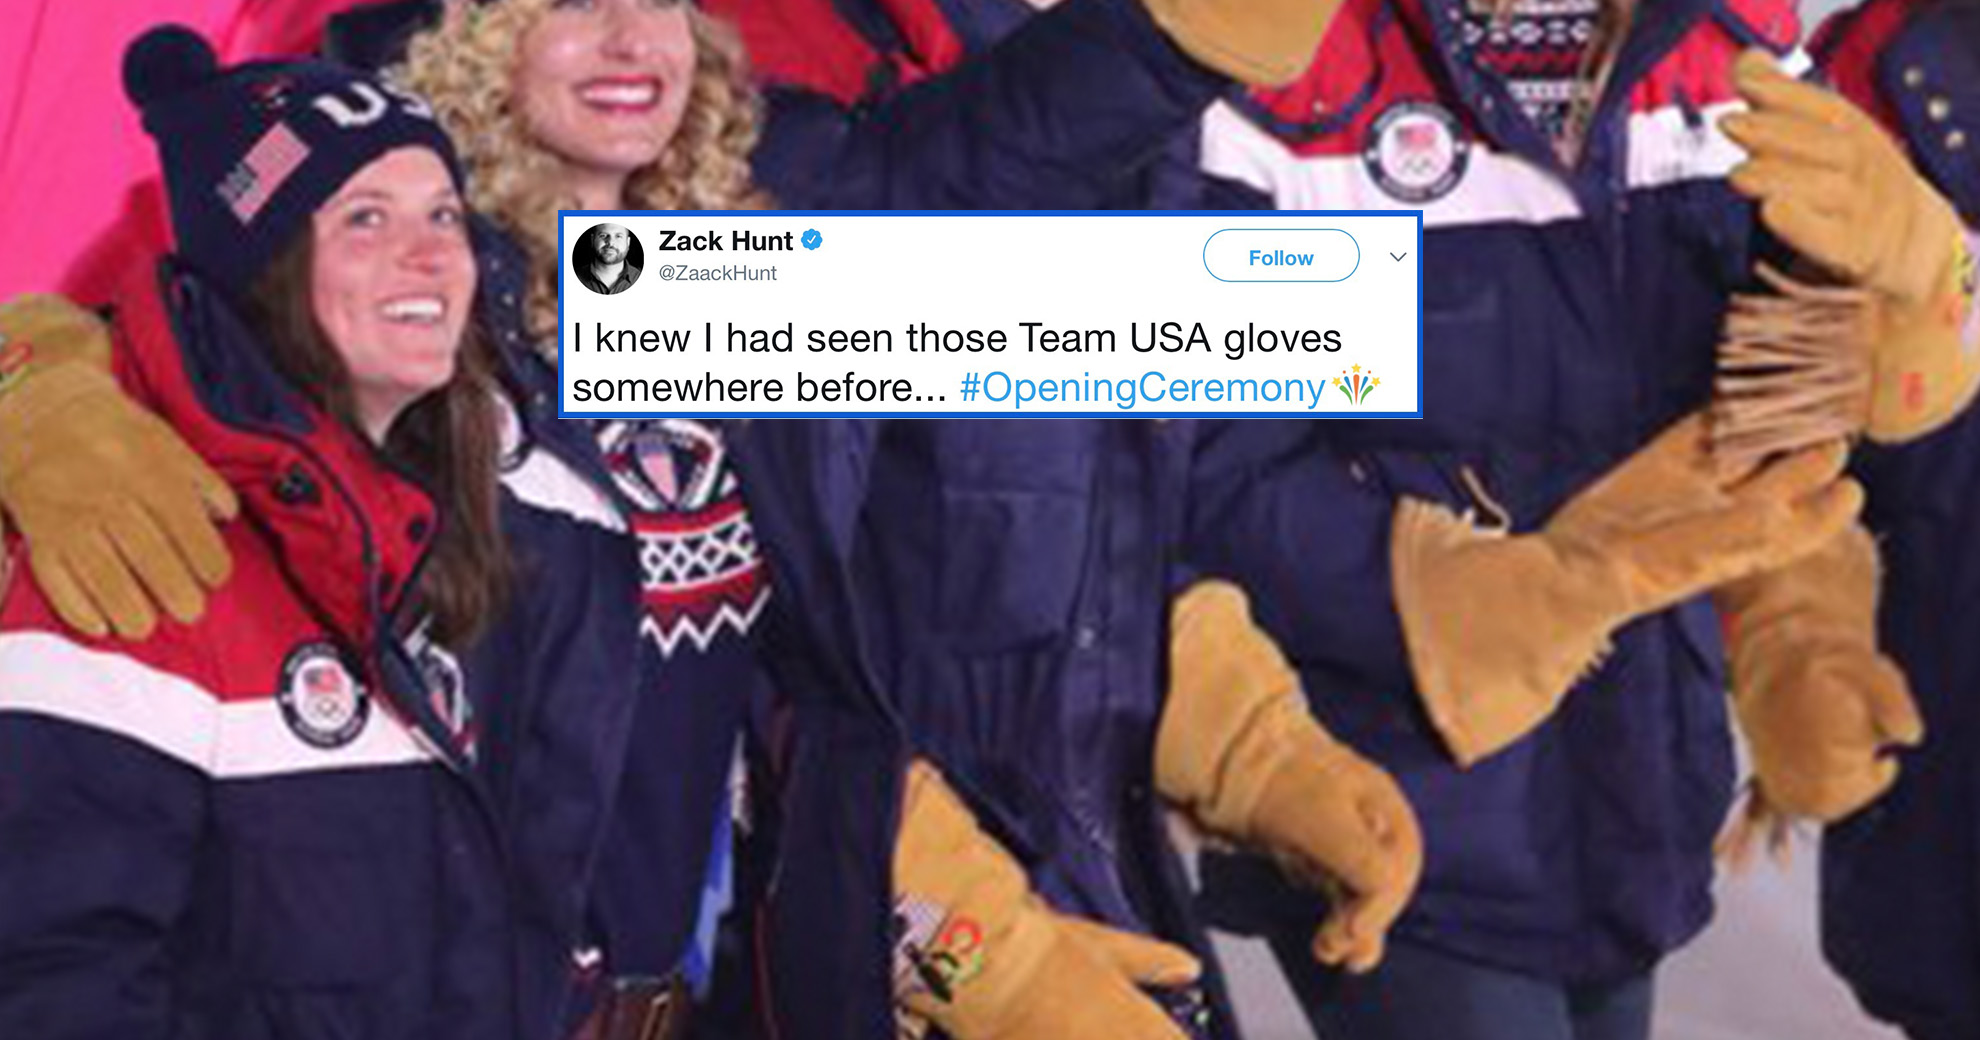 The Special Gloves At The Winter Olympics Are The Internet's Newest Meme